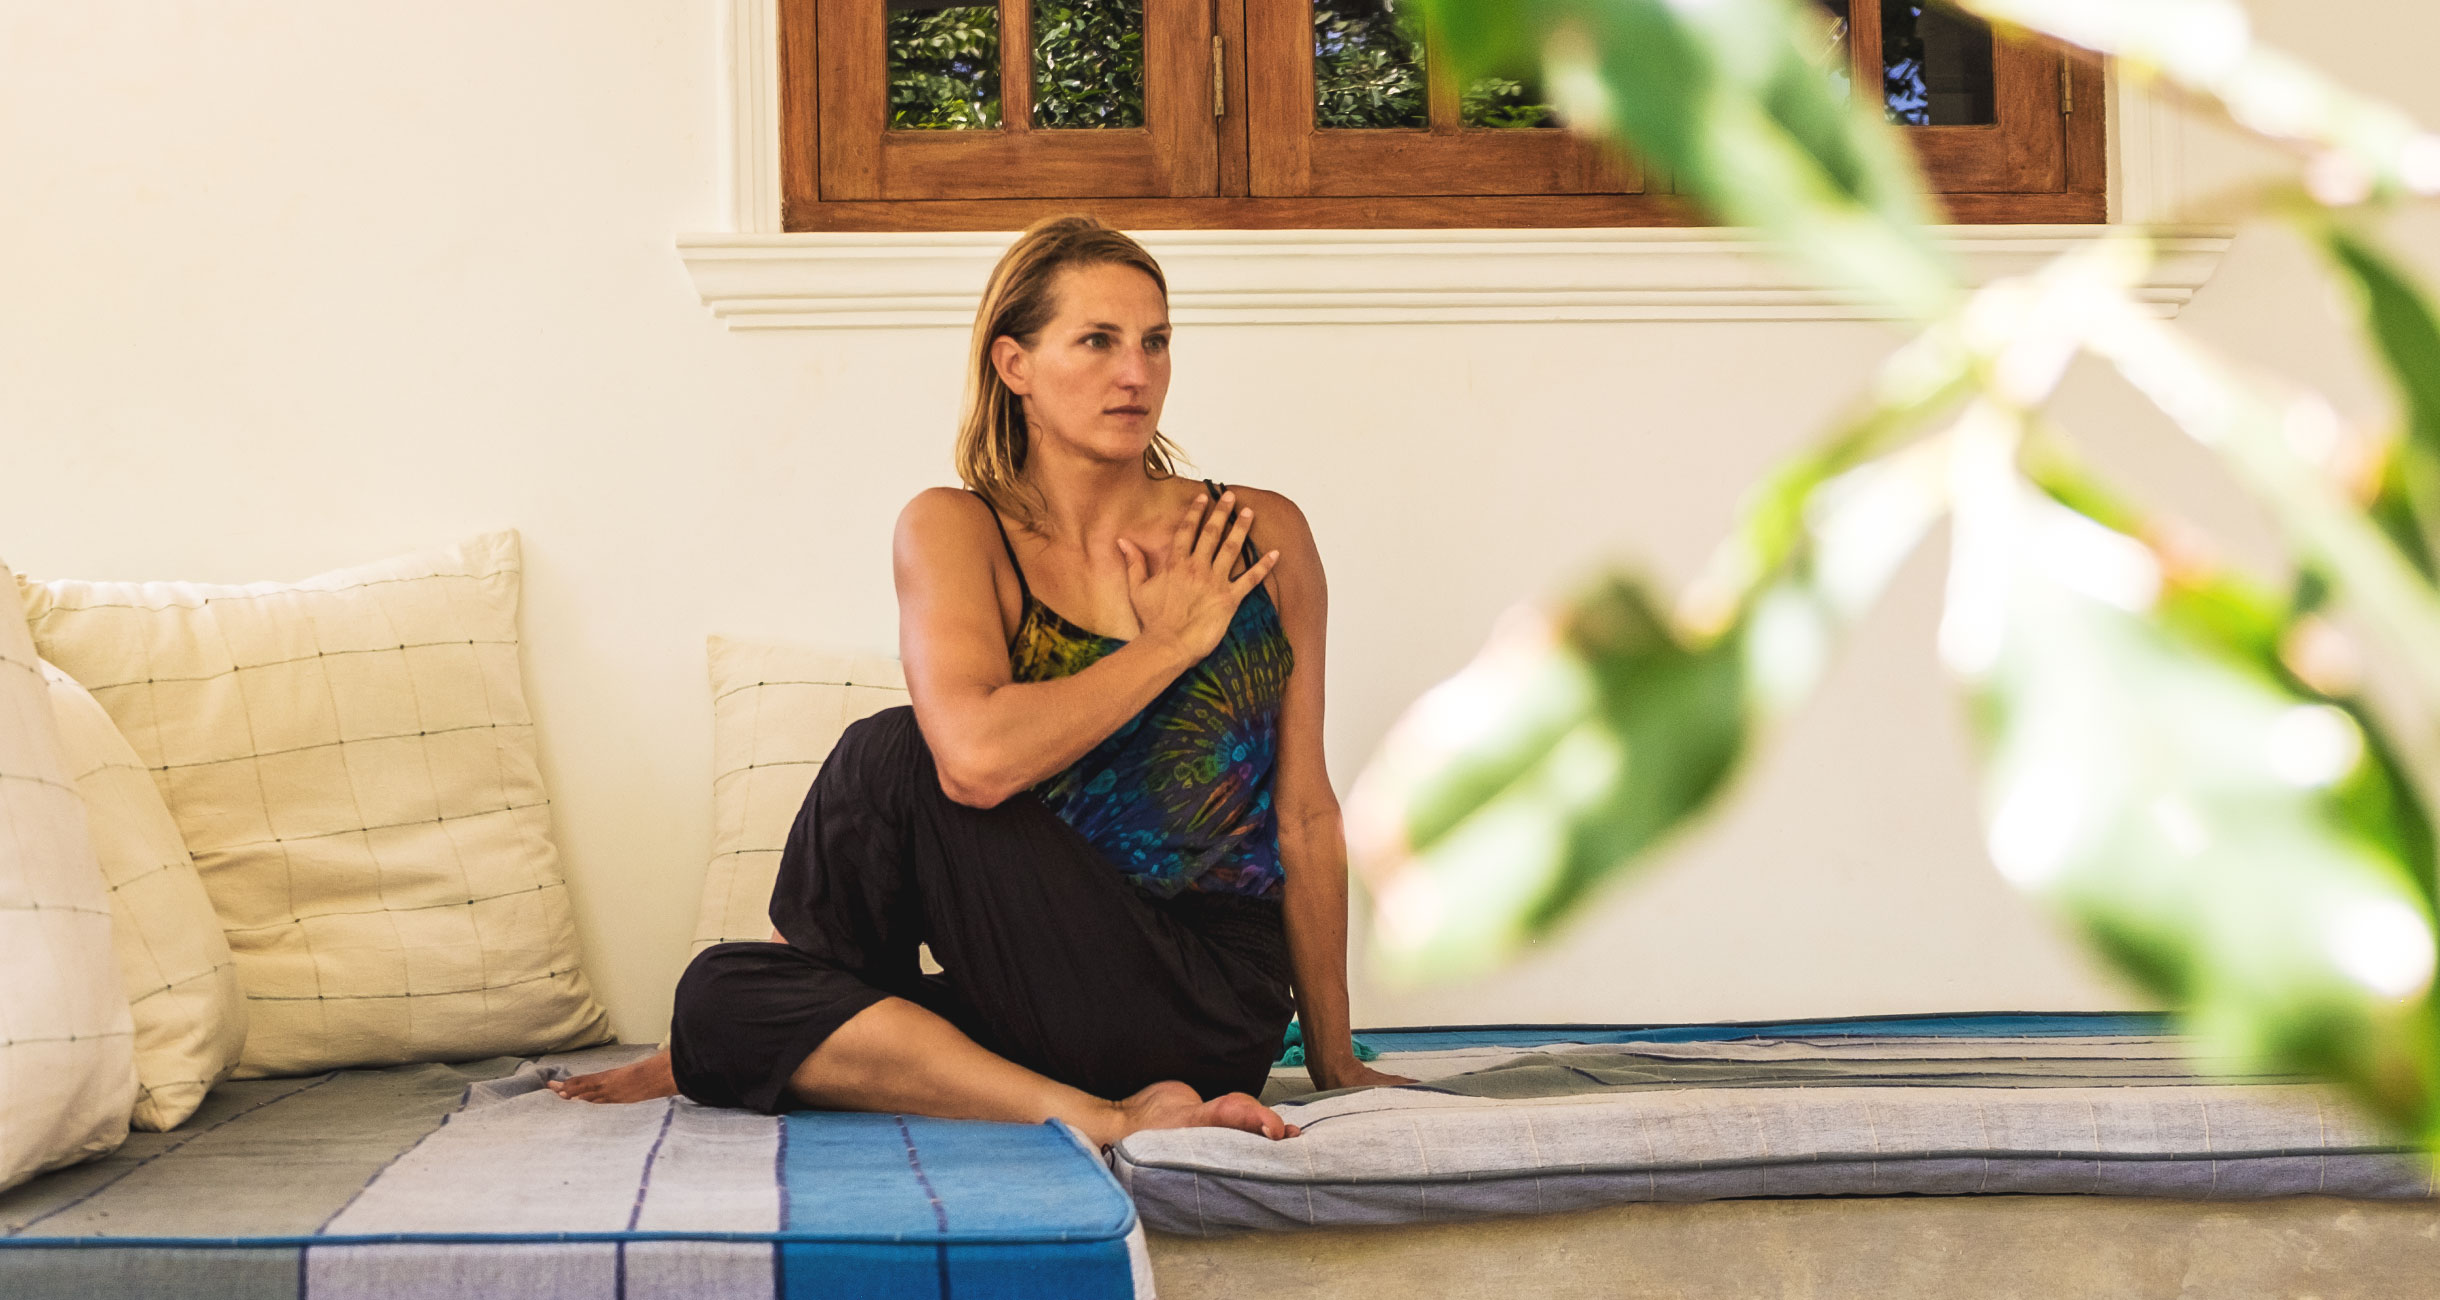 Soul_and_Sun_Yoga_Anke_Lenz_2440x1300_2.jpg